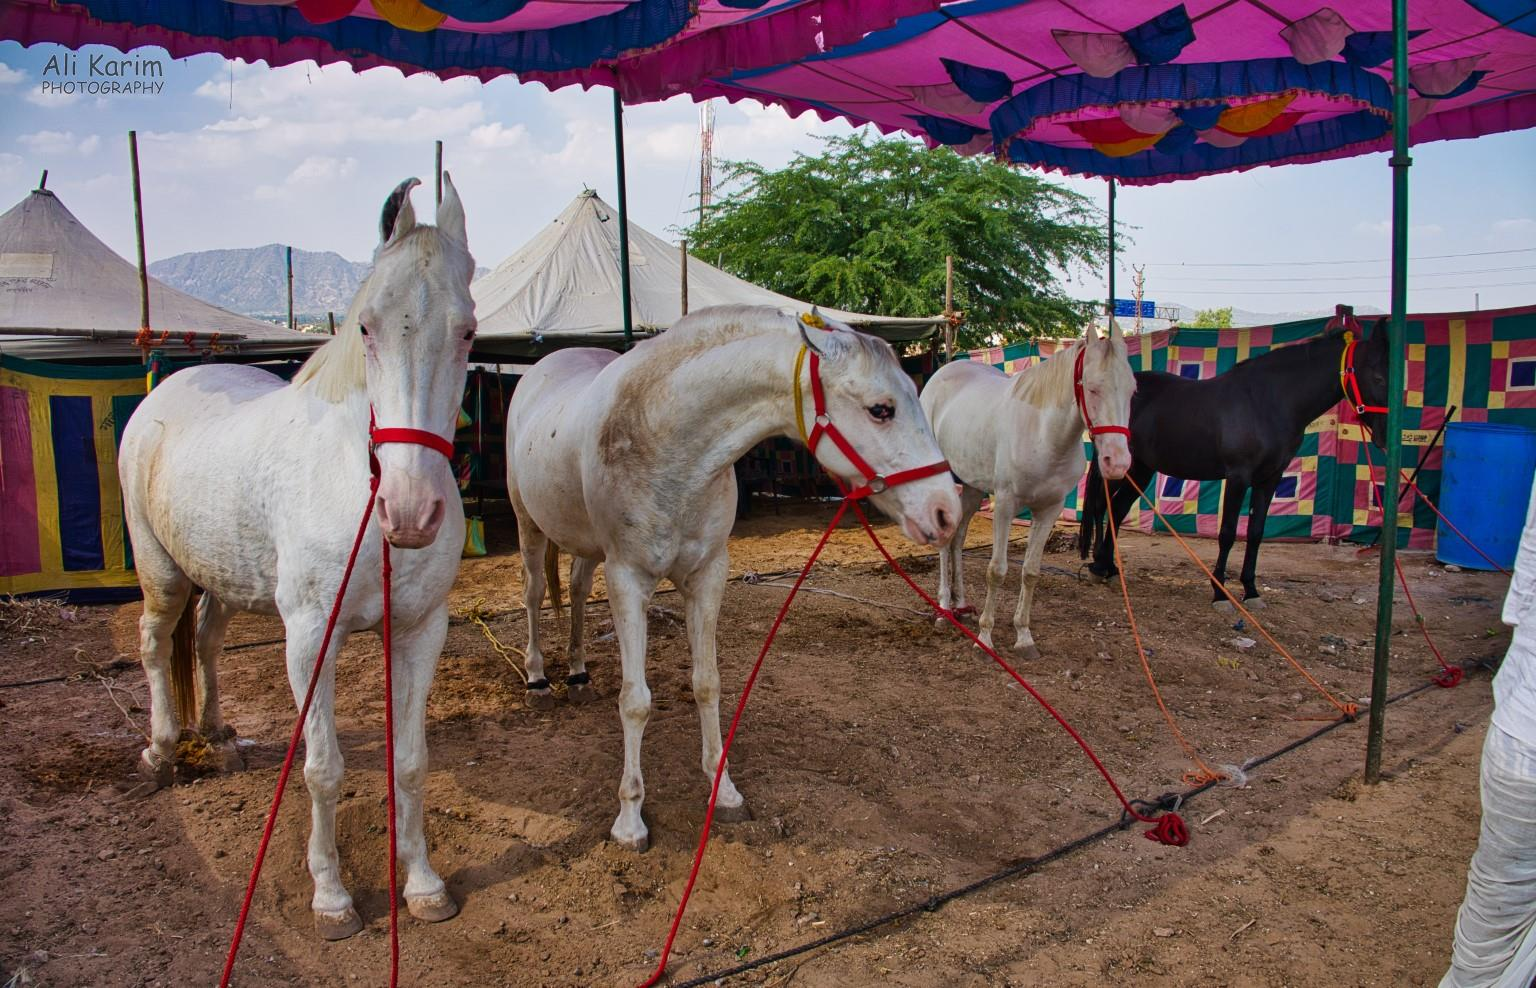 Pushkar, Rajasthan Prize horses being shown off; complete with sun protection canopy